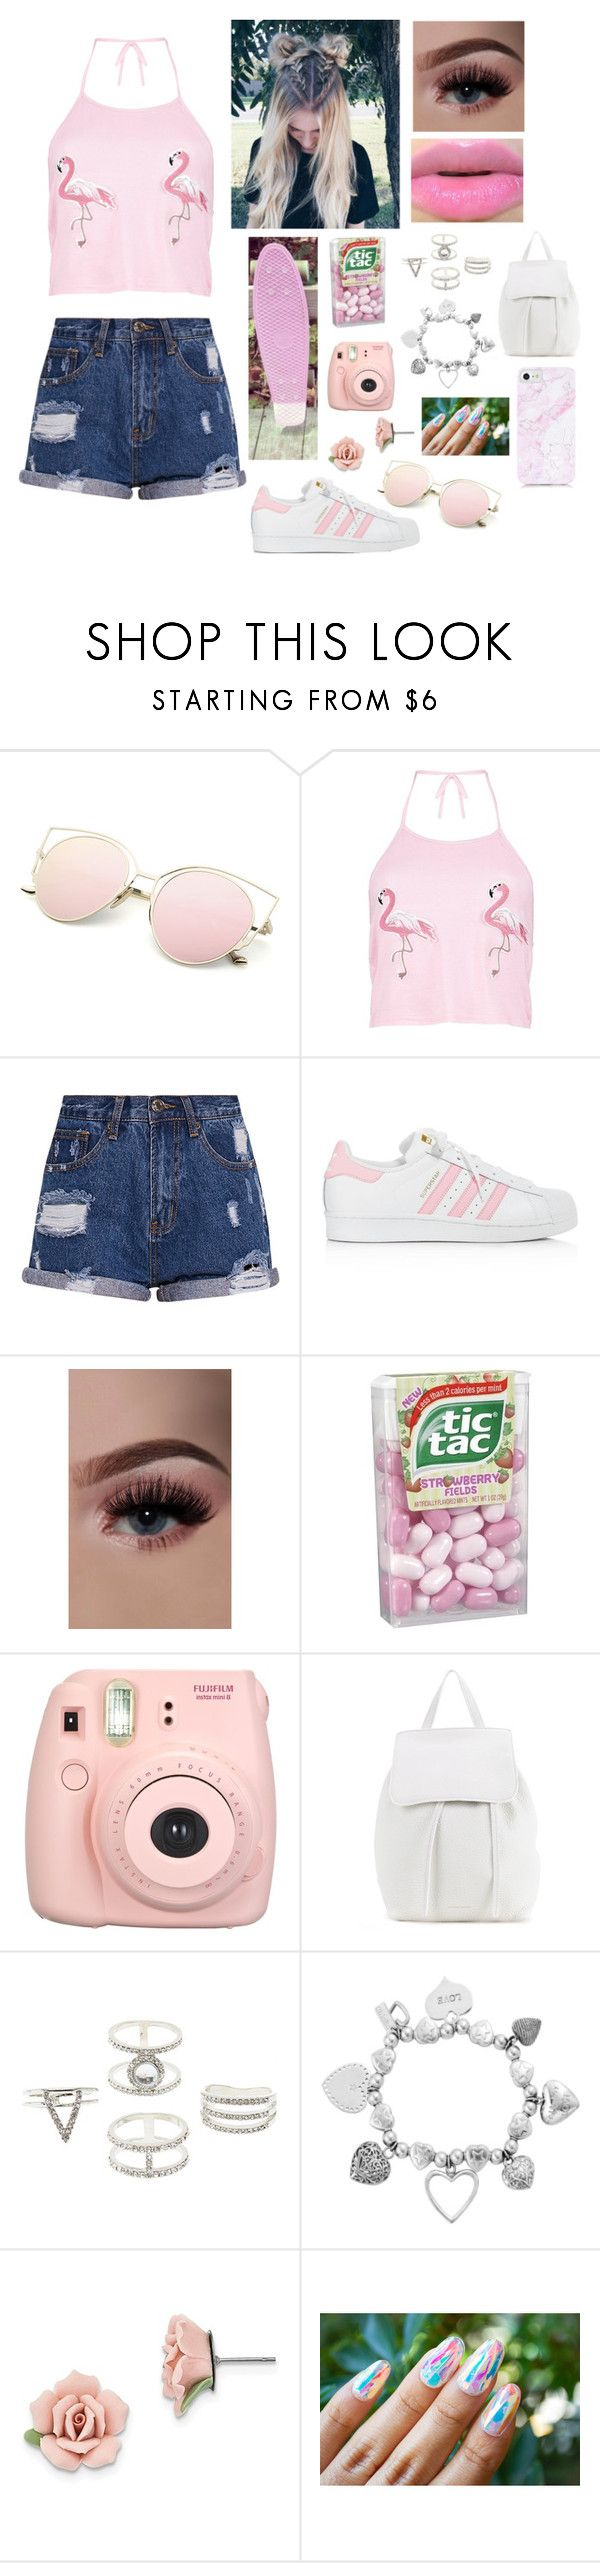 """Untitled #953"" by a-angel ❤ liked on Polyvore featuring Boohoo, adidas, Penny, Fujifilm, Mansur Gavriel, Charlotte Russe, ChloBo and 1928"